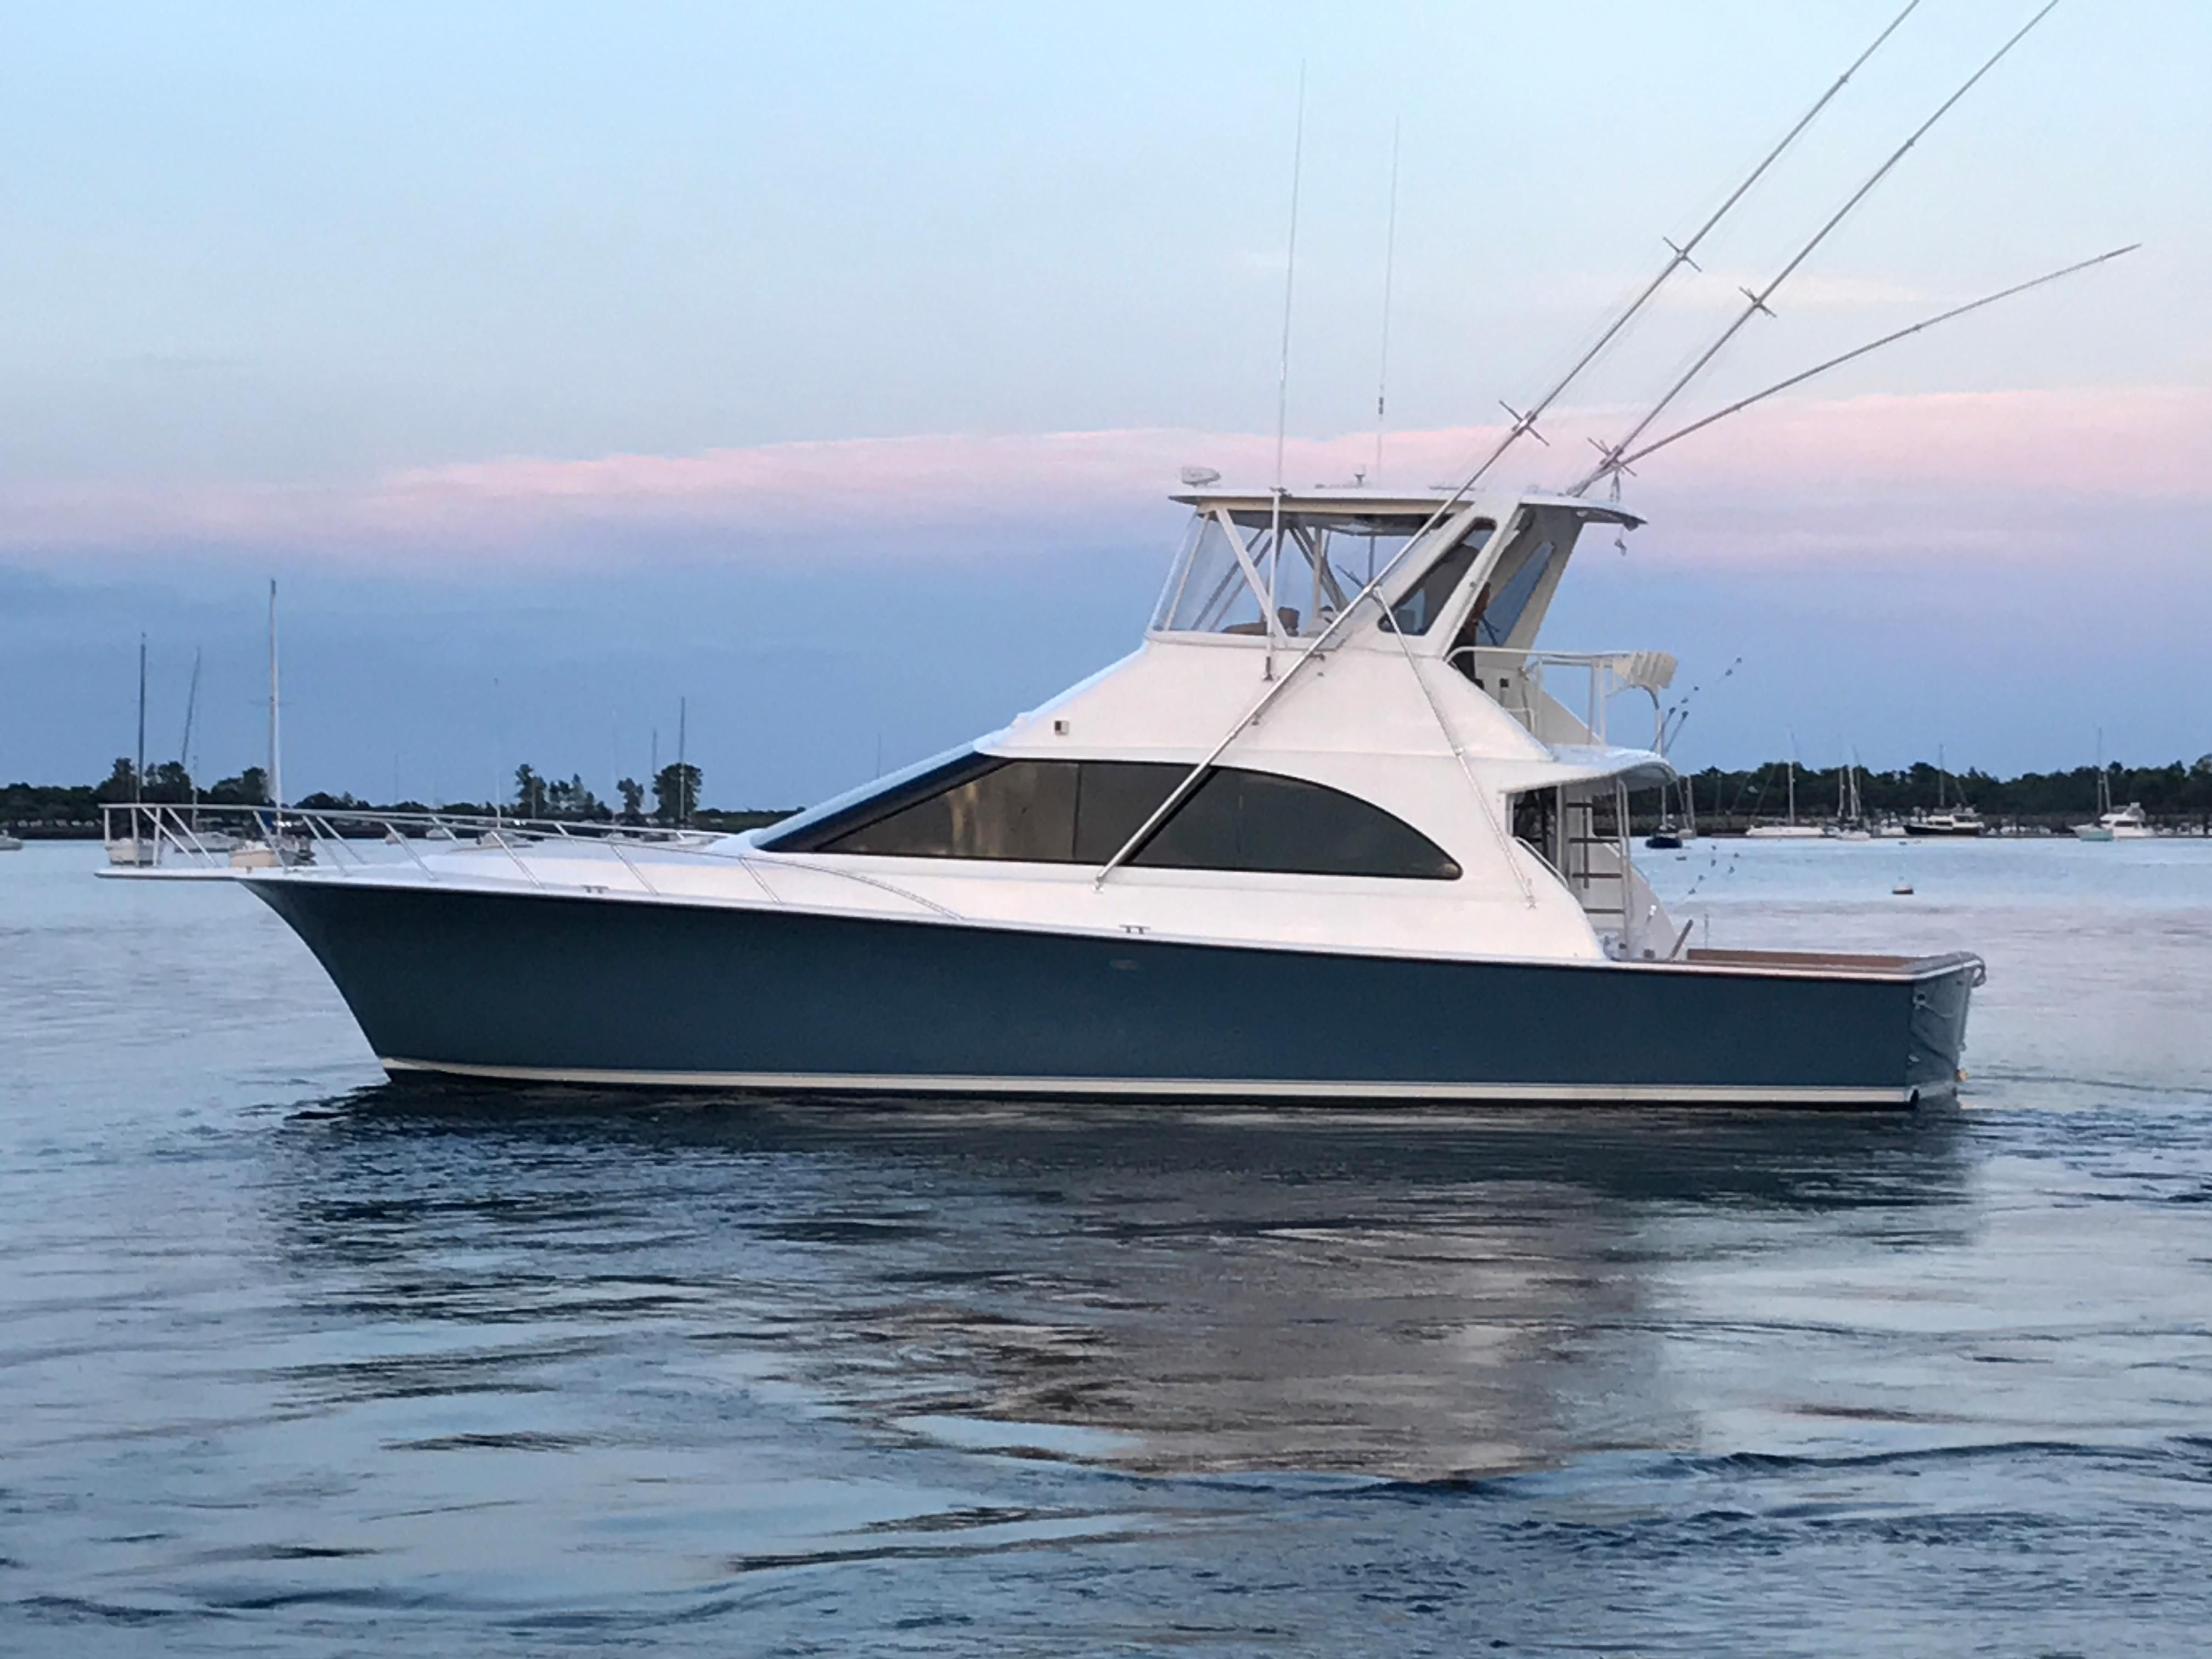 1998 ocean yachts 48 super sport power boat for sale www for Ocean yachts 48 motor yacht for sale